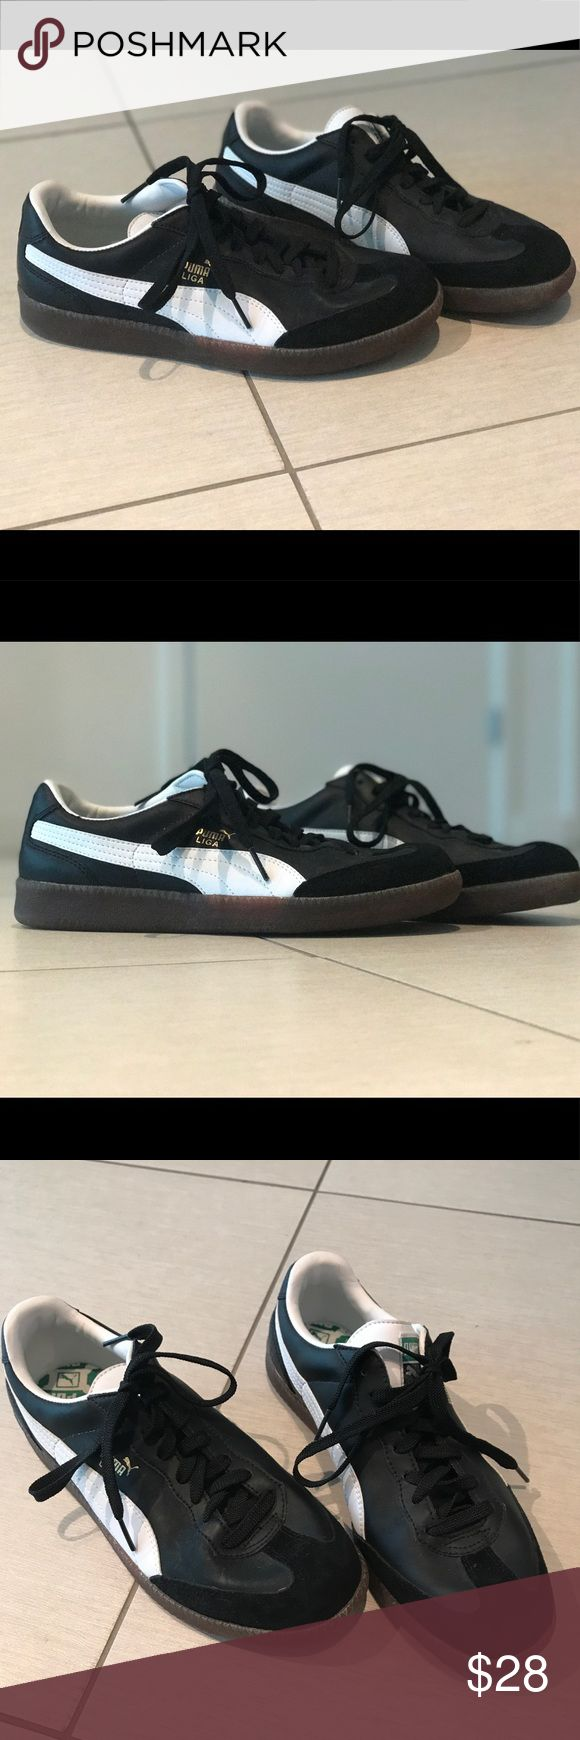 Puma Liga black suede sneakers Perfect condition. Never been used. Only worn to try on inside. Any questions please ask. Puma Shoes Sneakers